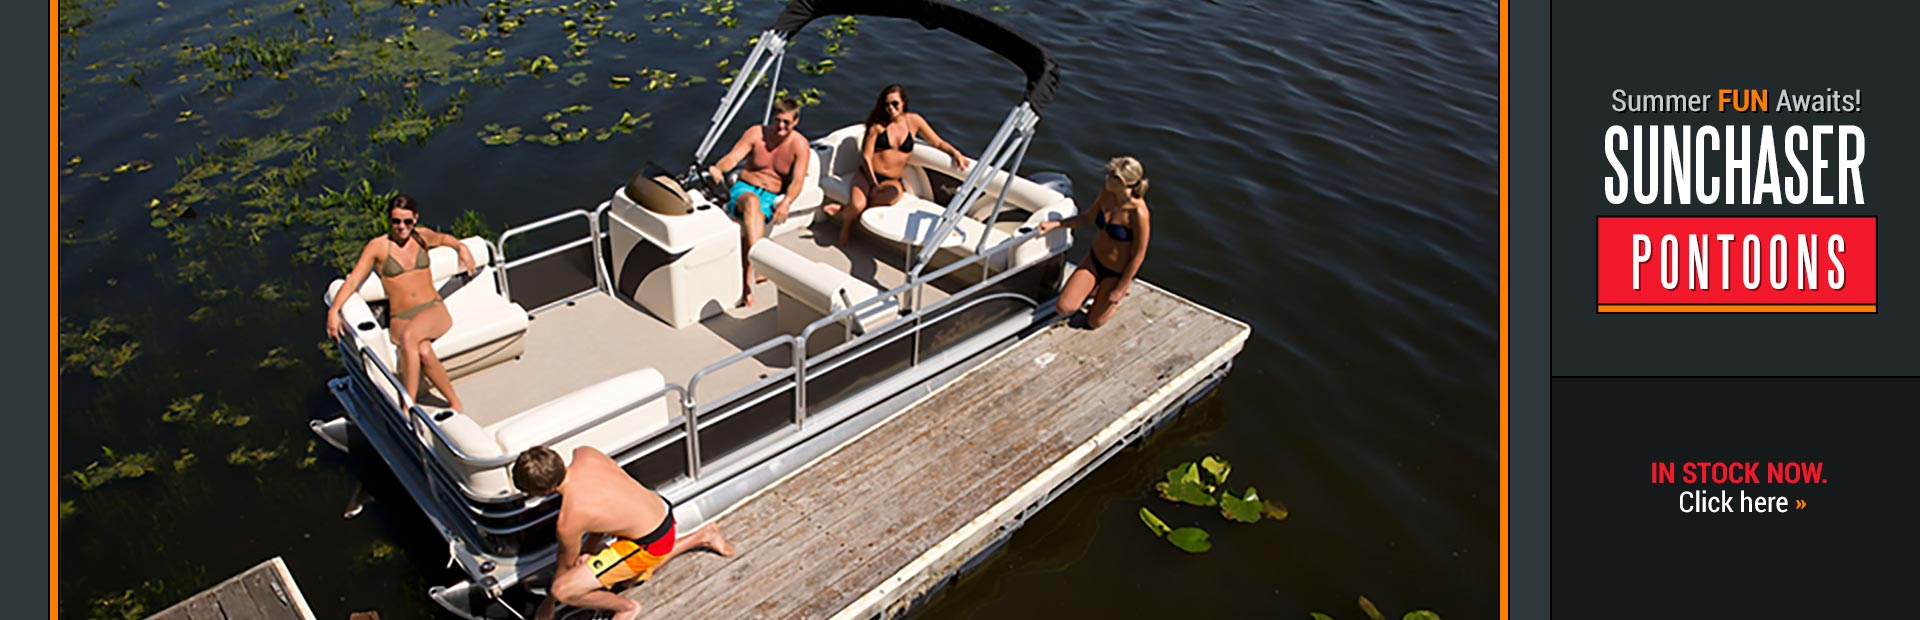 Click here to view our selection of SunChaser pontoons!